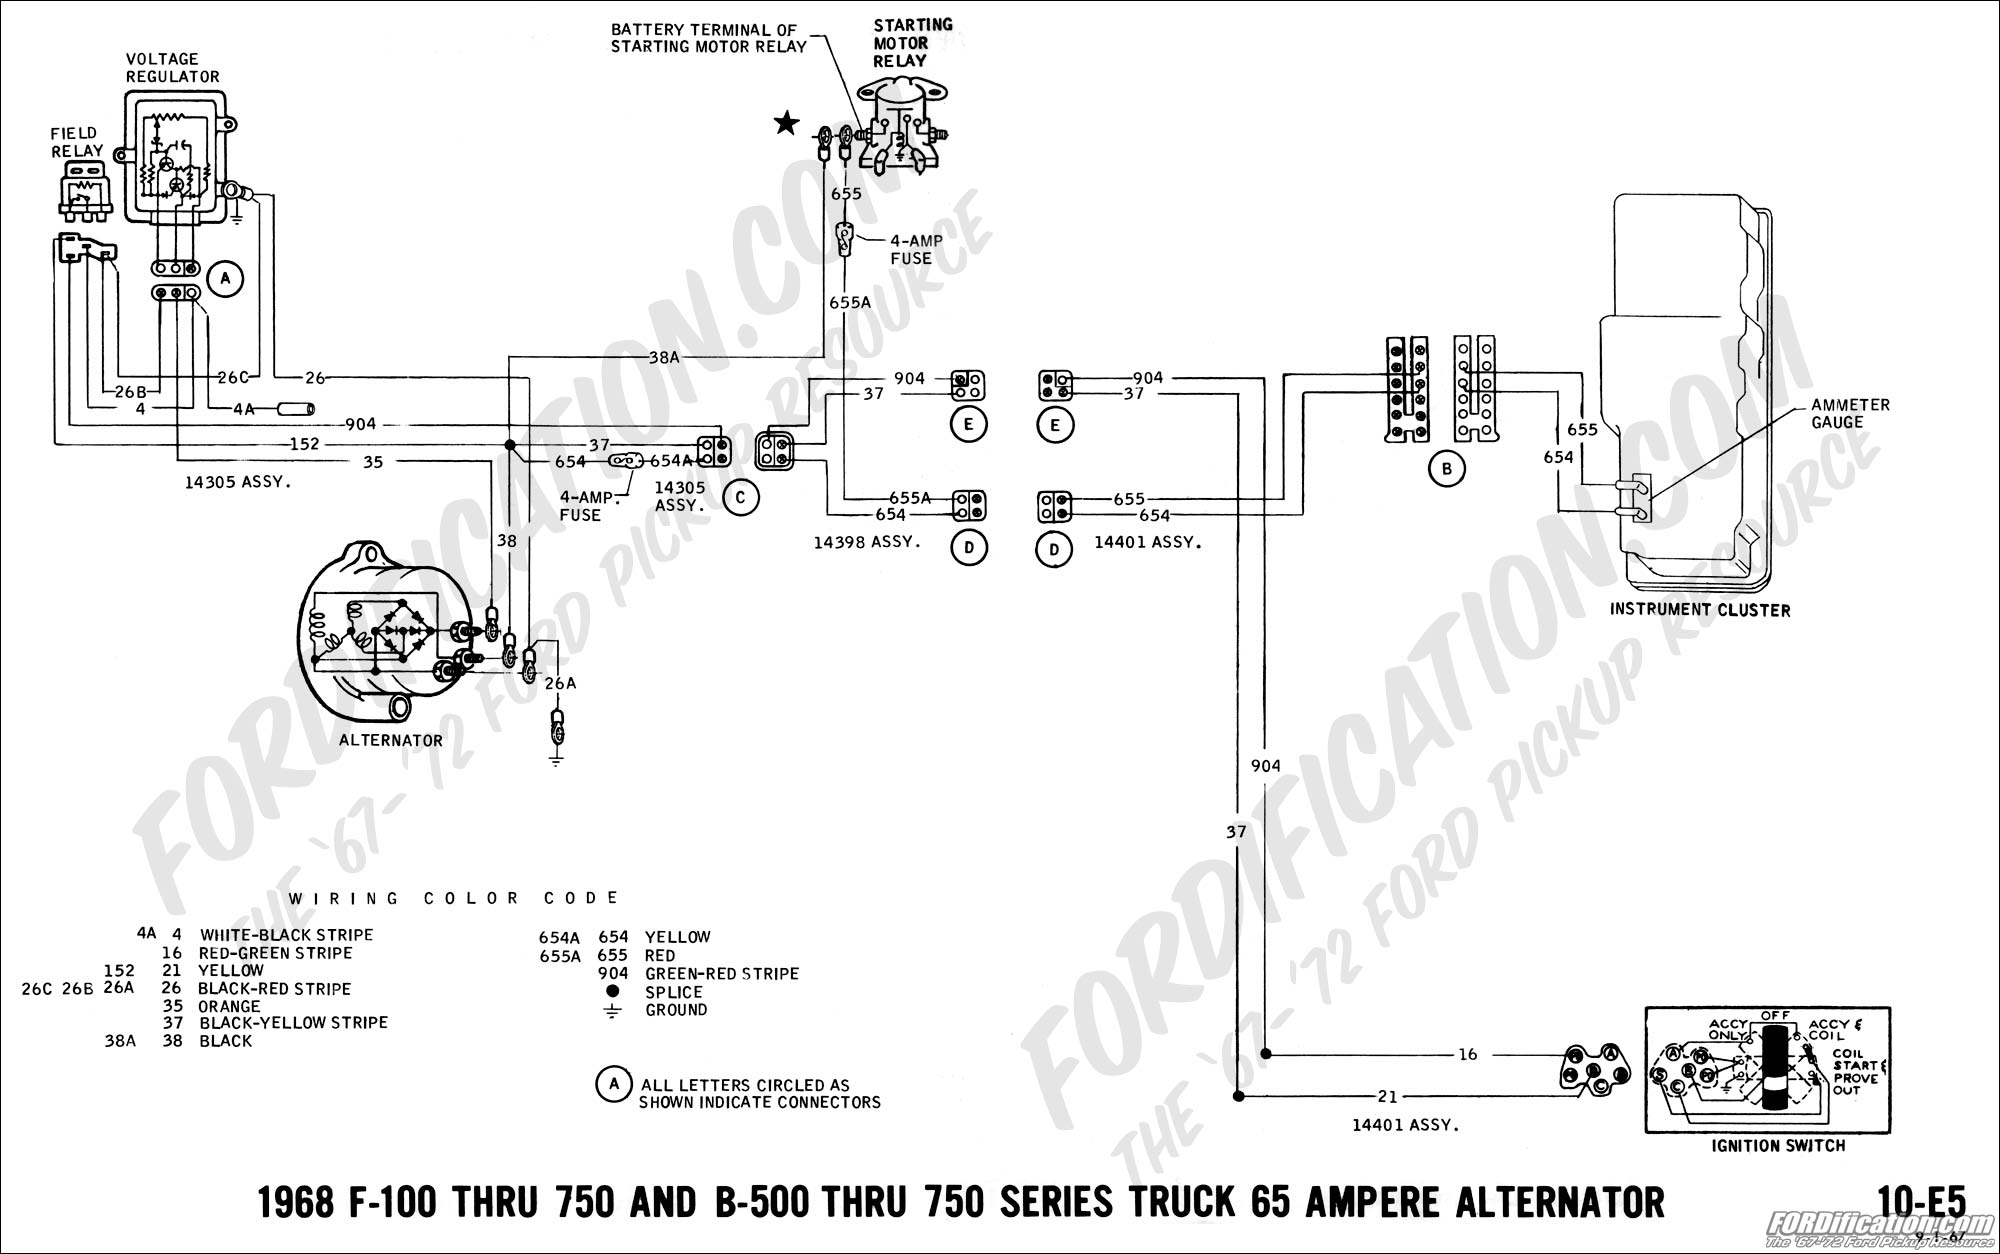 1994 F150 Wiring Battery And Alternator Real Diagram High Amp 100 Alt Ford Motorcraft Schematics Rh Sylviaexpress Com Replacement